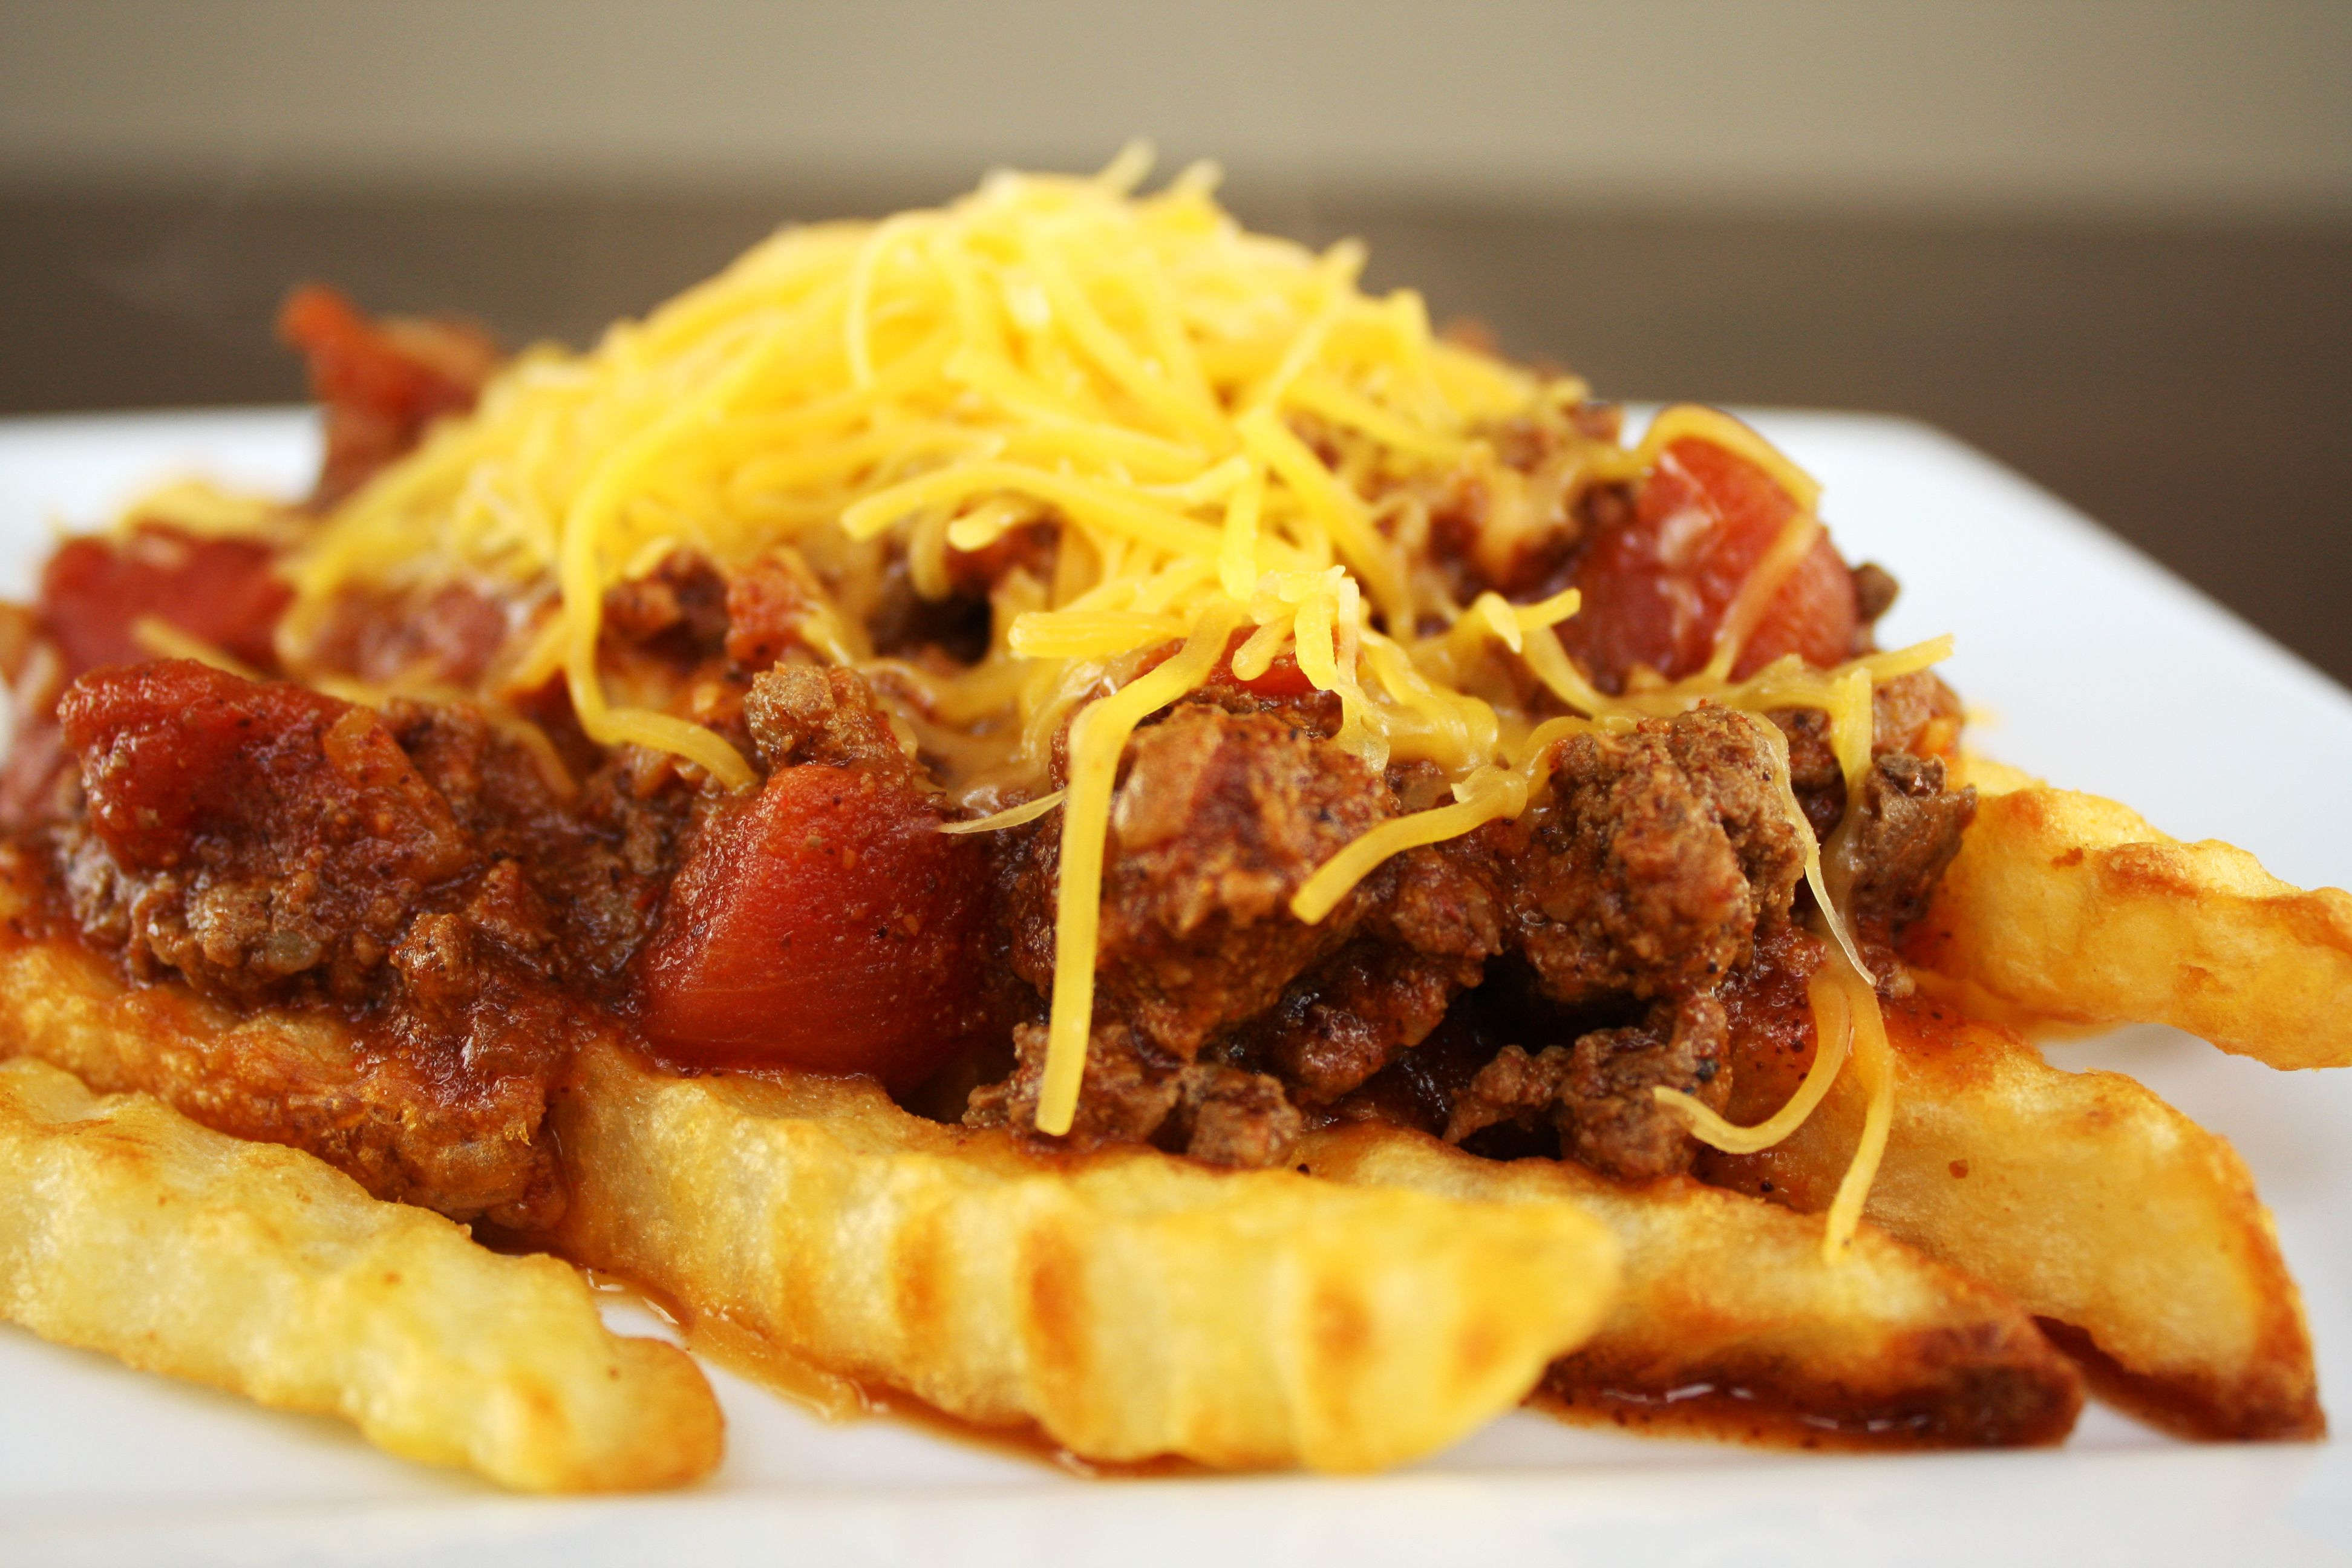 Chili cheese fries chili cheese fries food food pictures